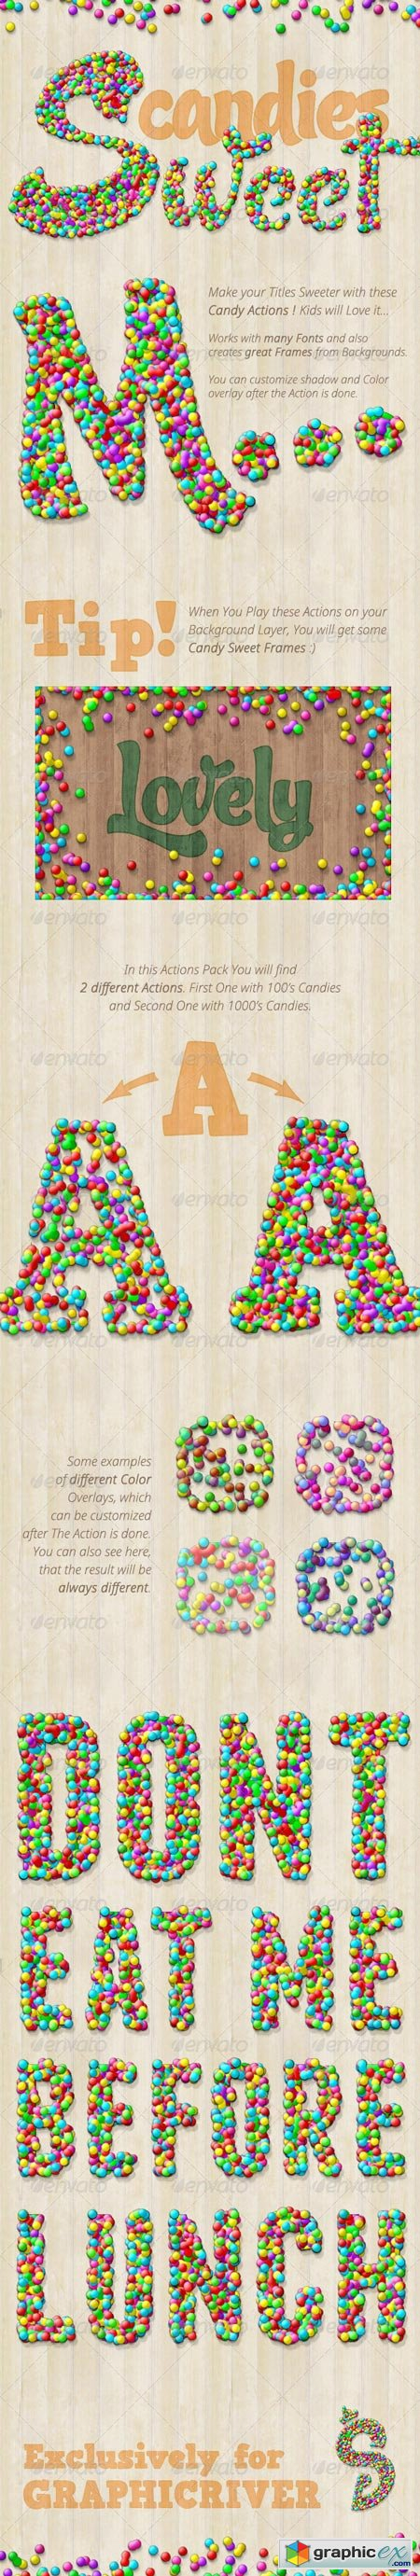 Candy Text Creator - Photoshop Actions 7588581